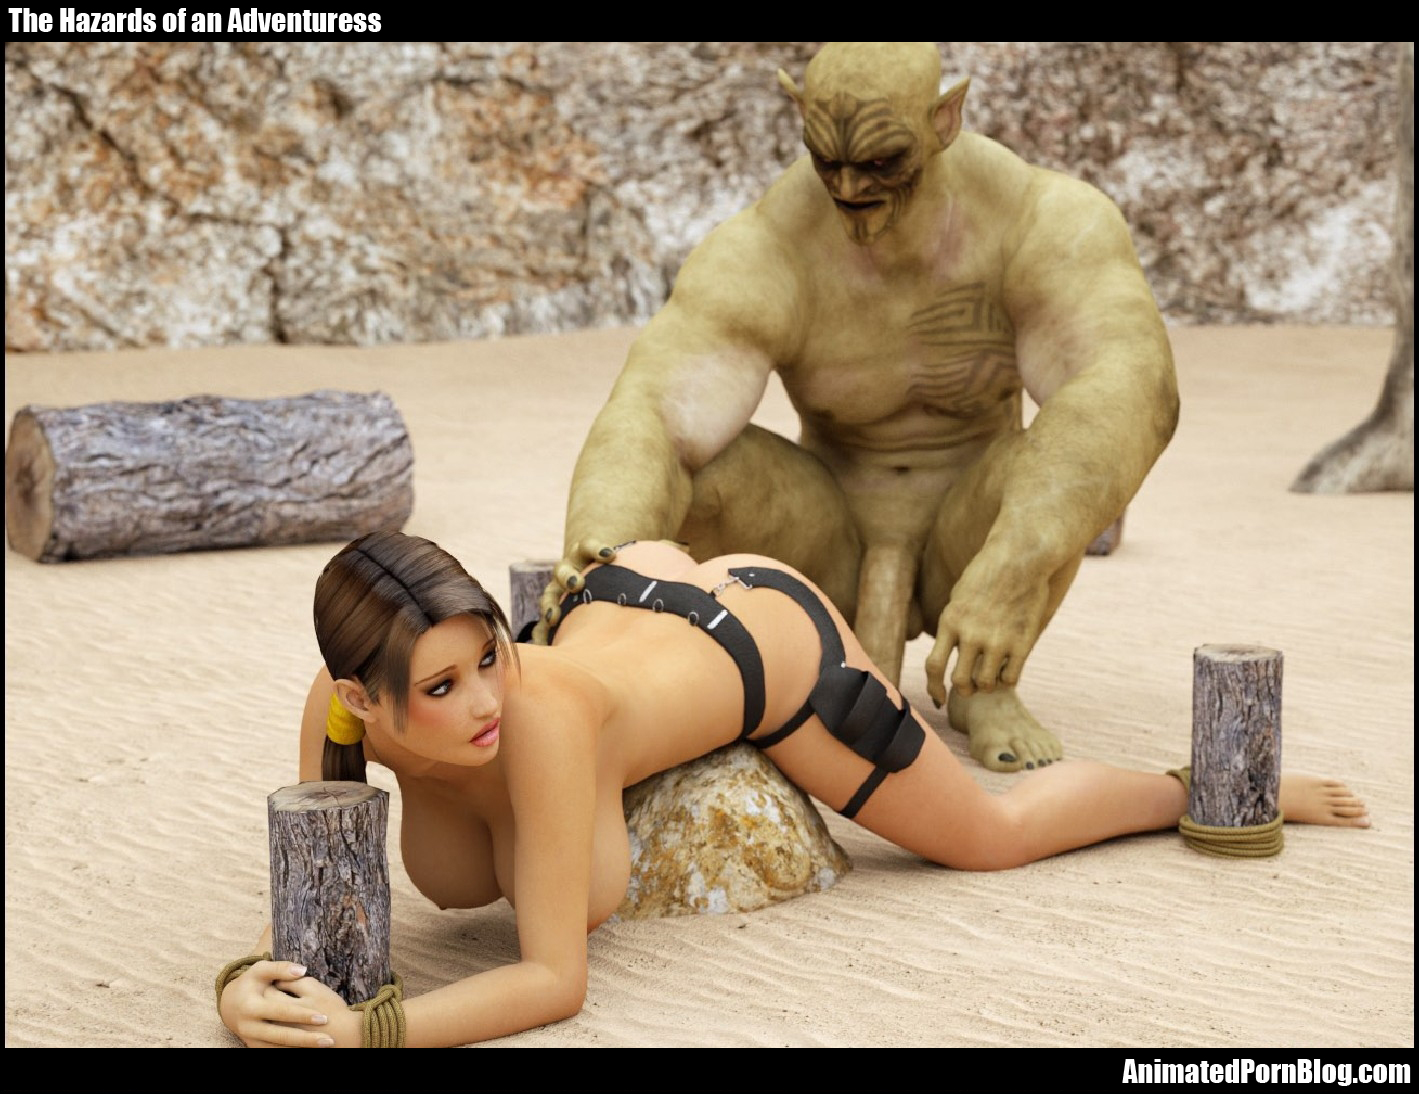 Lara croft fucking monsters naked picture